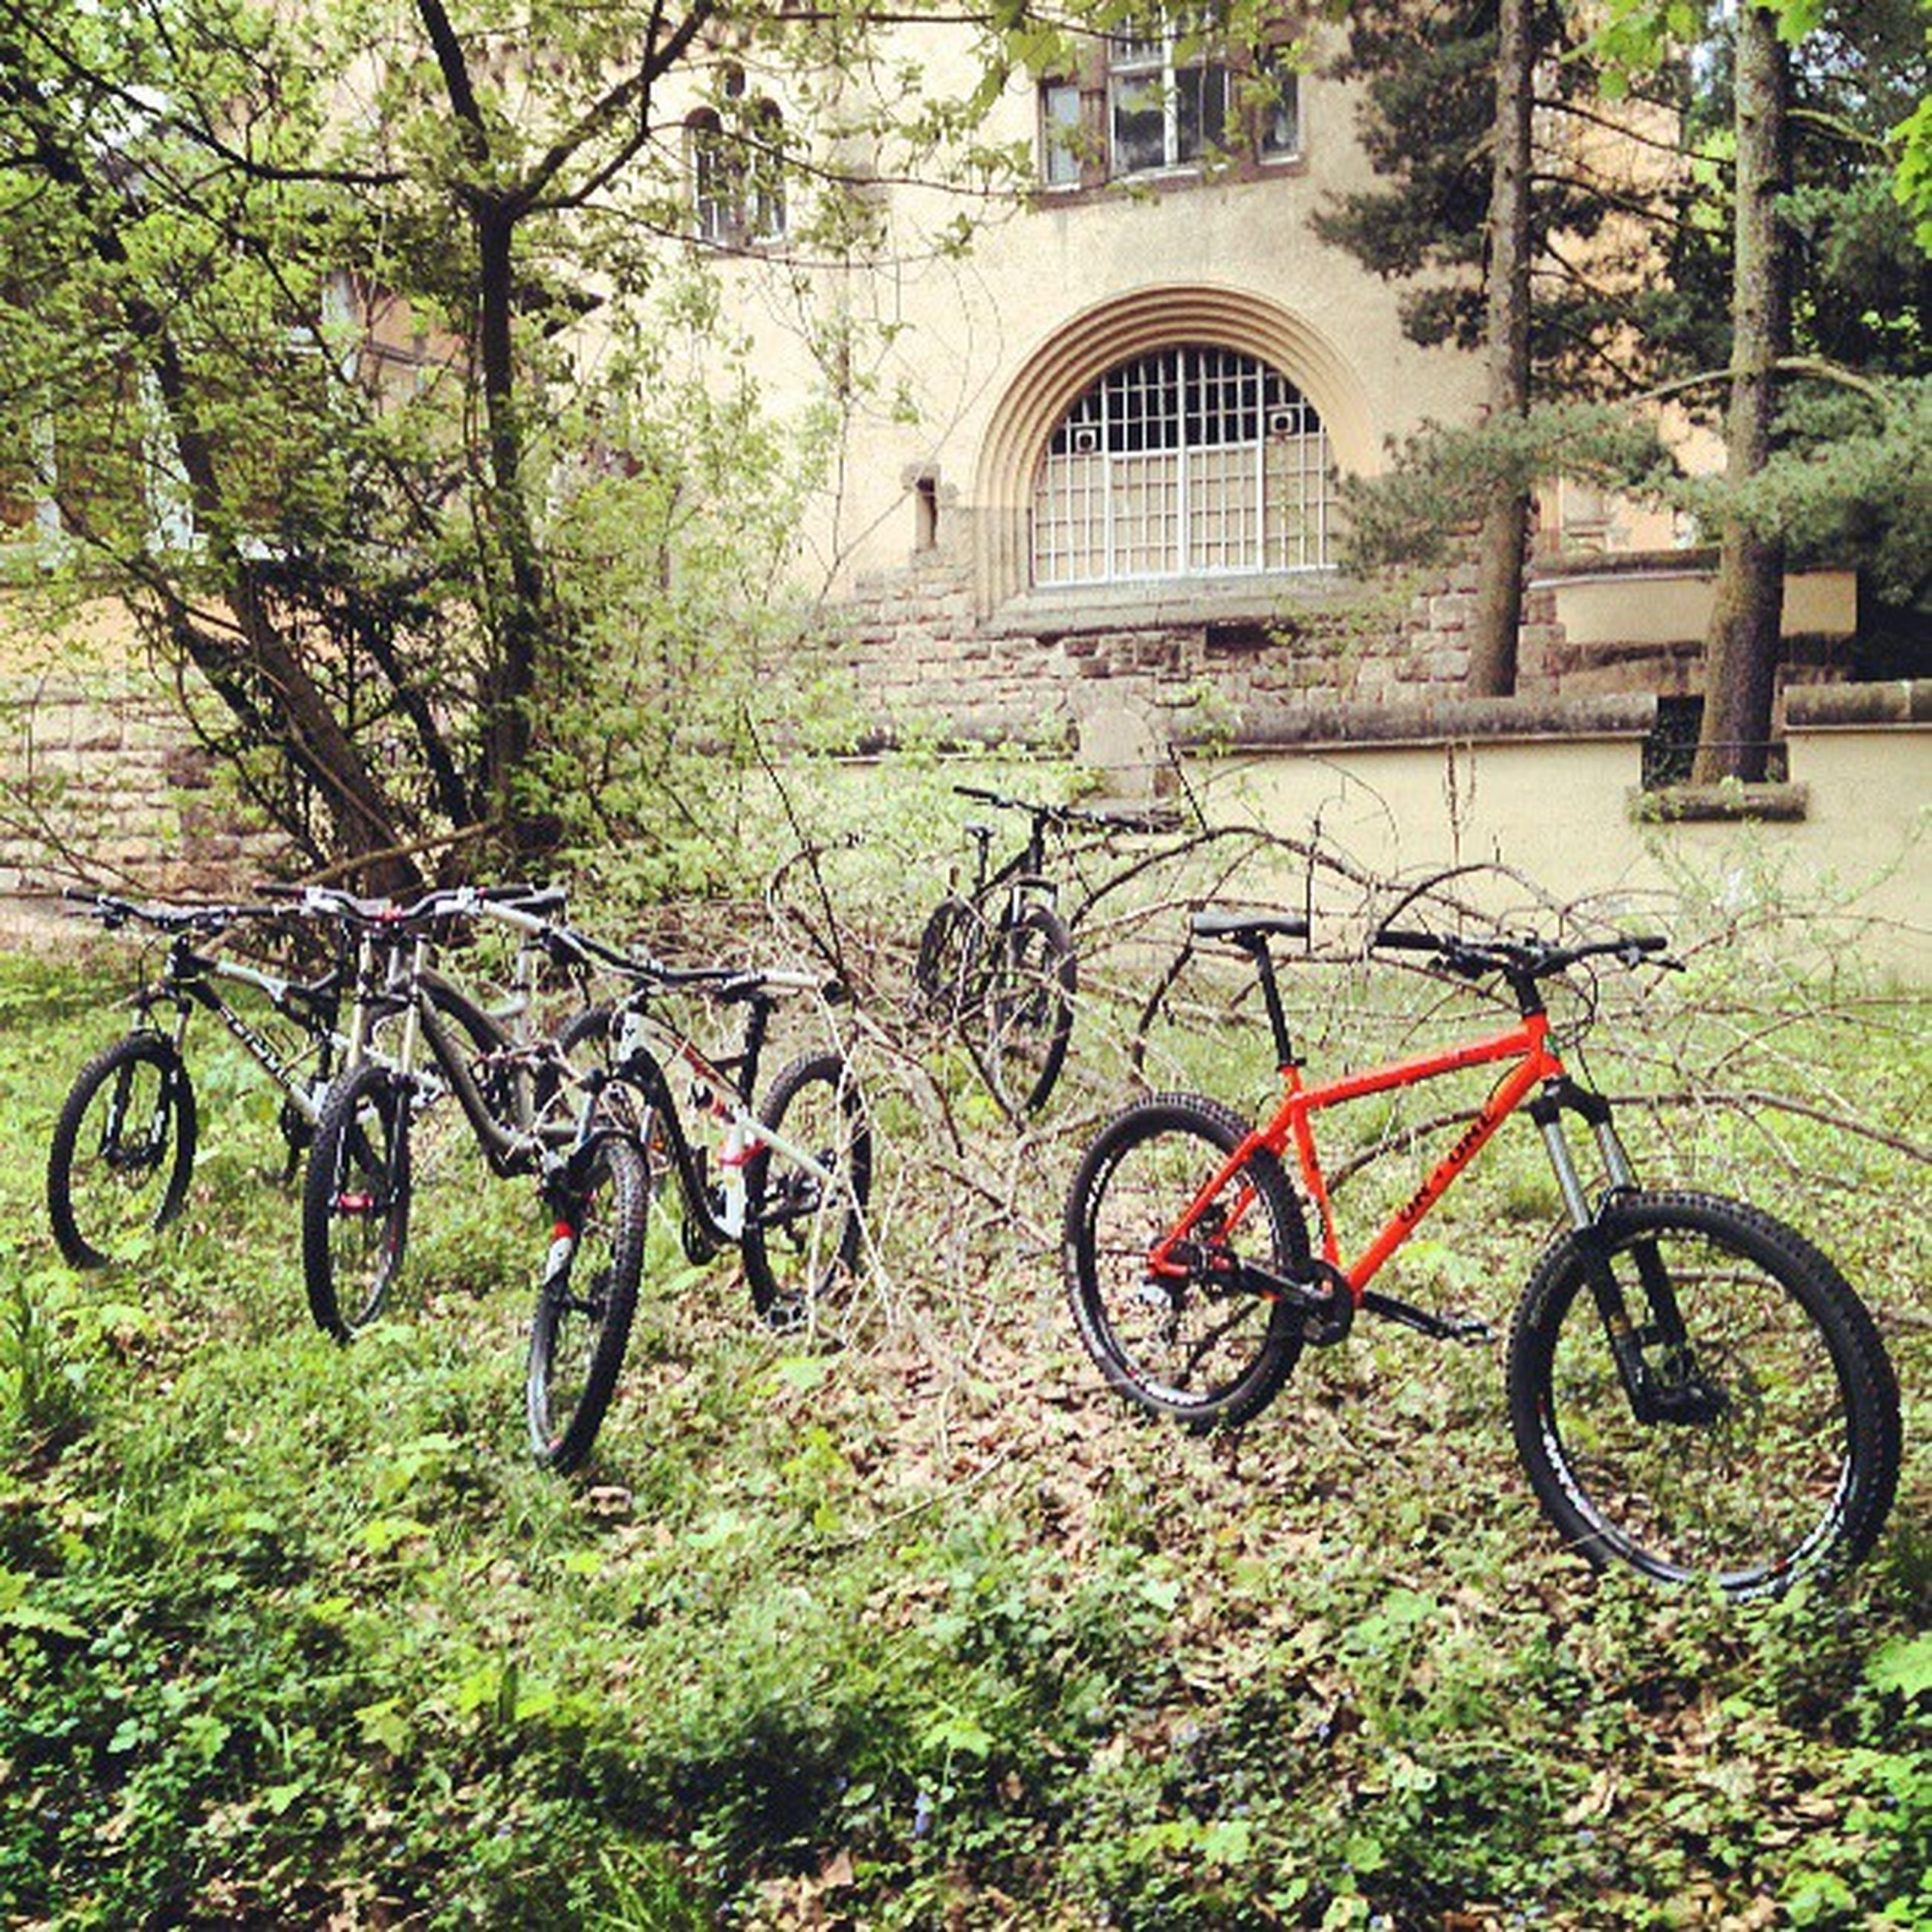 bicycle, building exterior, architecture, built structure, mode of transport, transportation, land vehicle, tree, grass, stationary, parked, house, plant, green color, arch, day, parking, outdoors, growth, residential structure